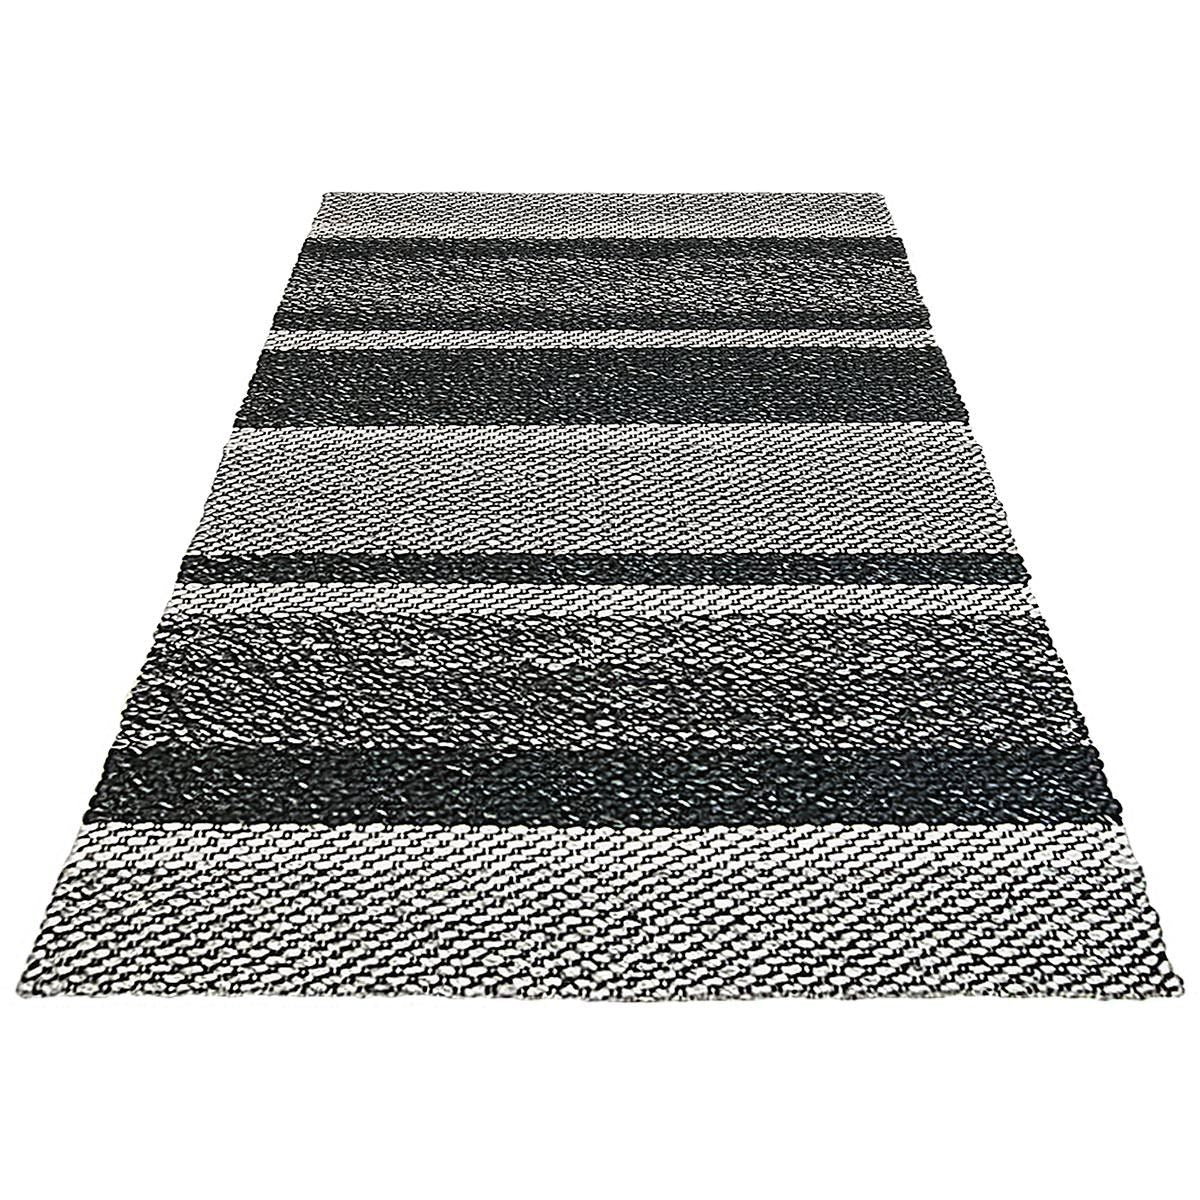 Braided Jute Rug 02 Grey/Black 2